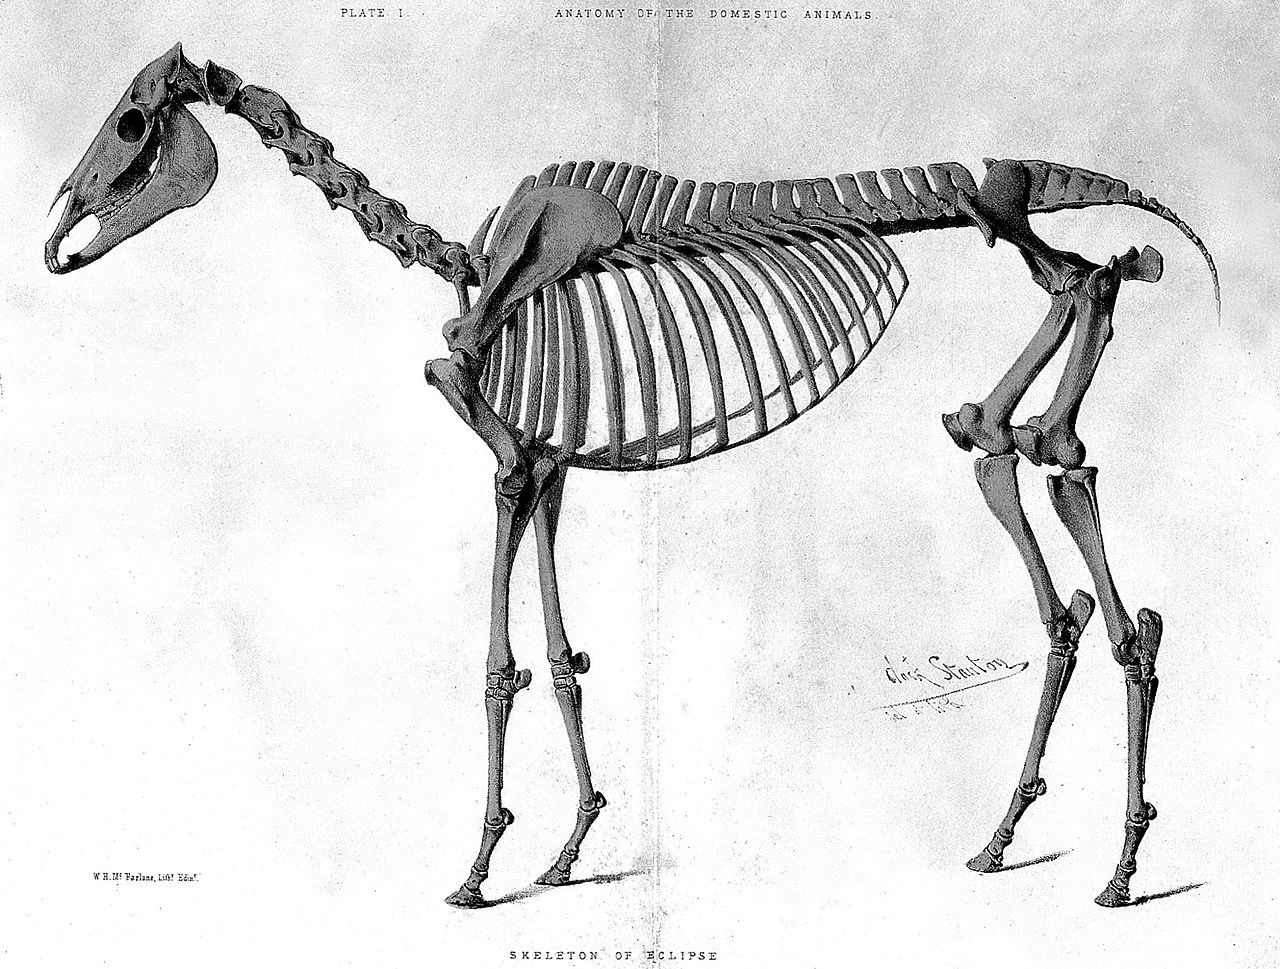 Eclipse the horse - his skeleton